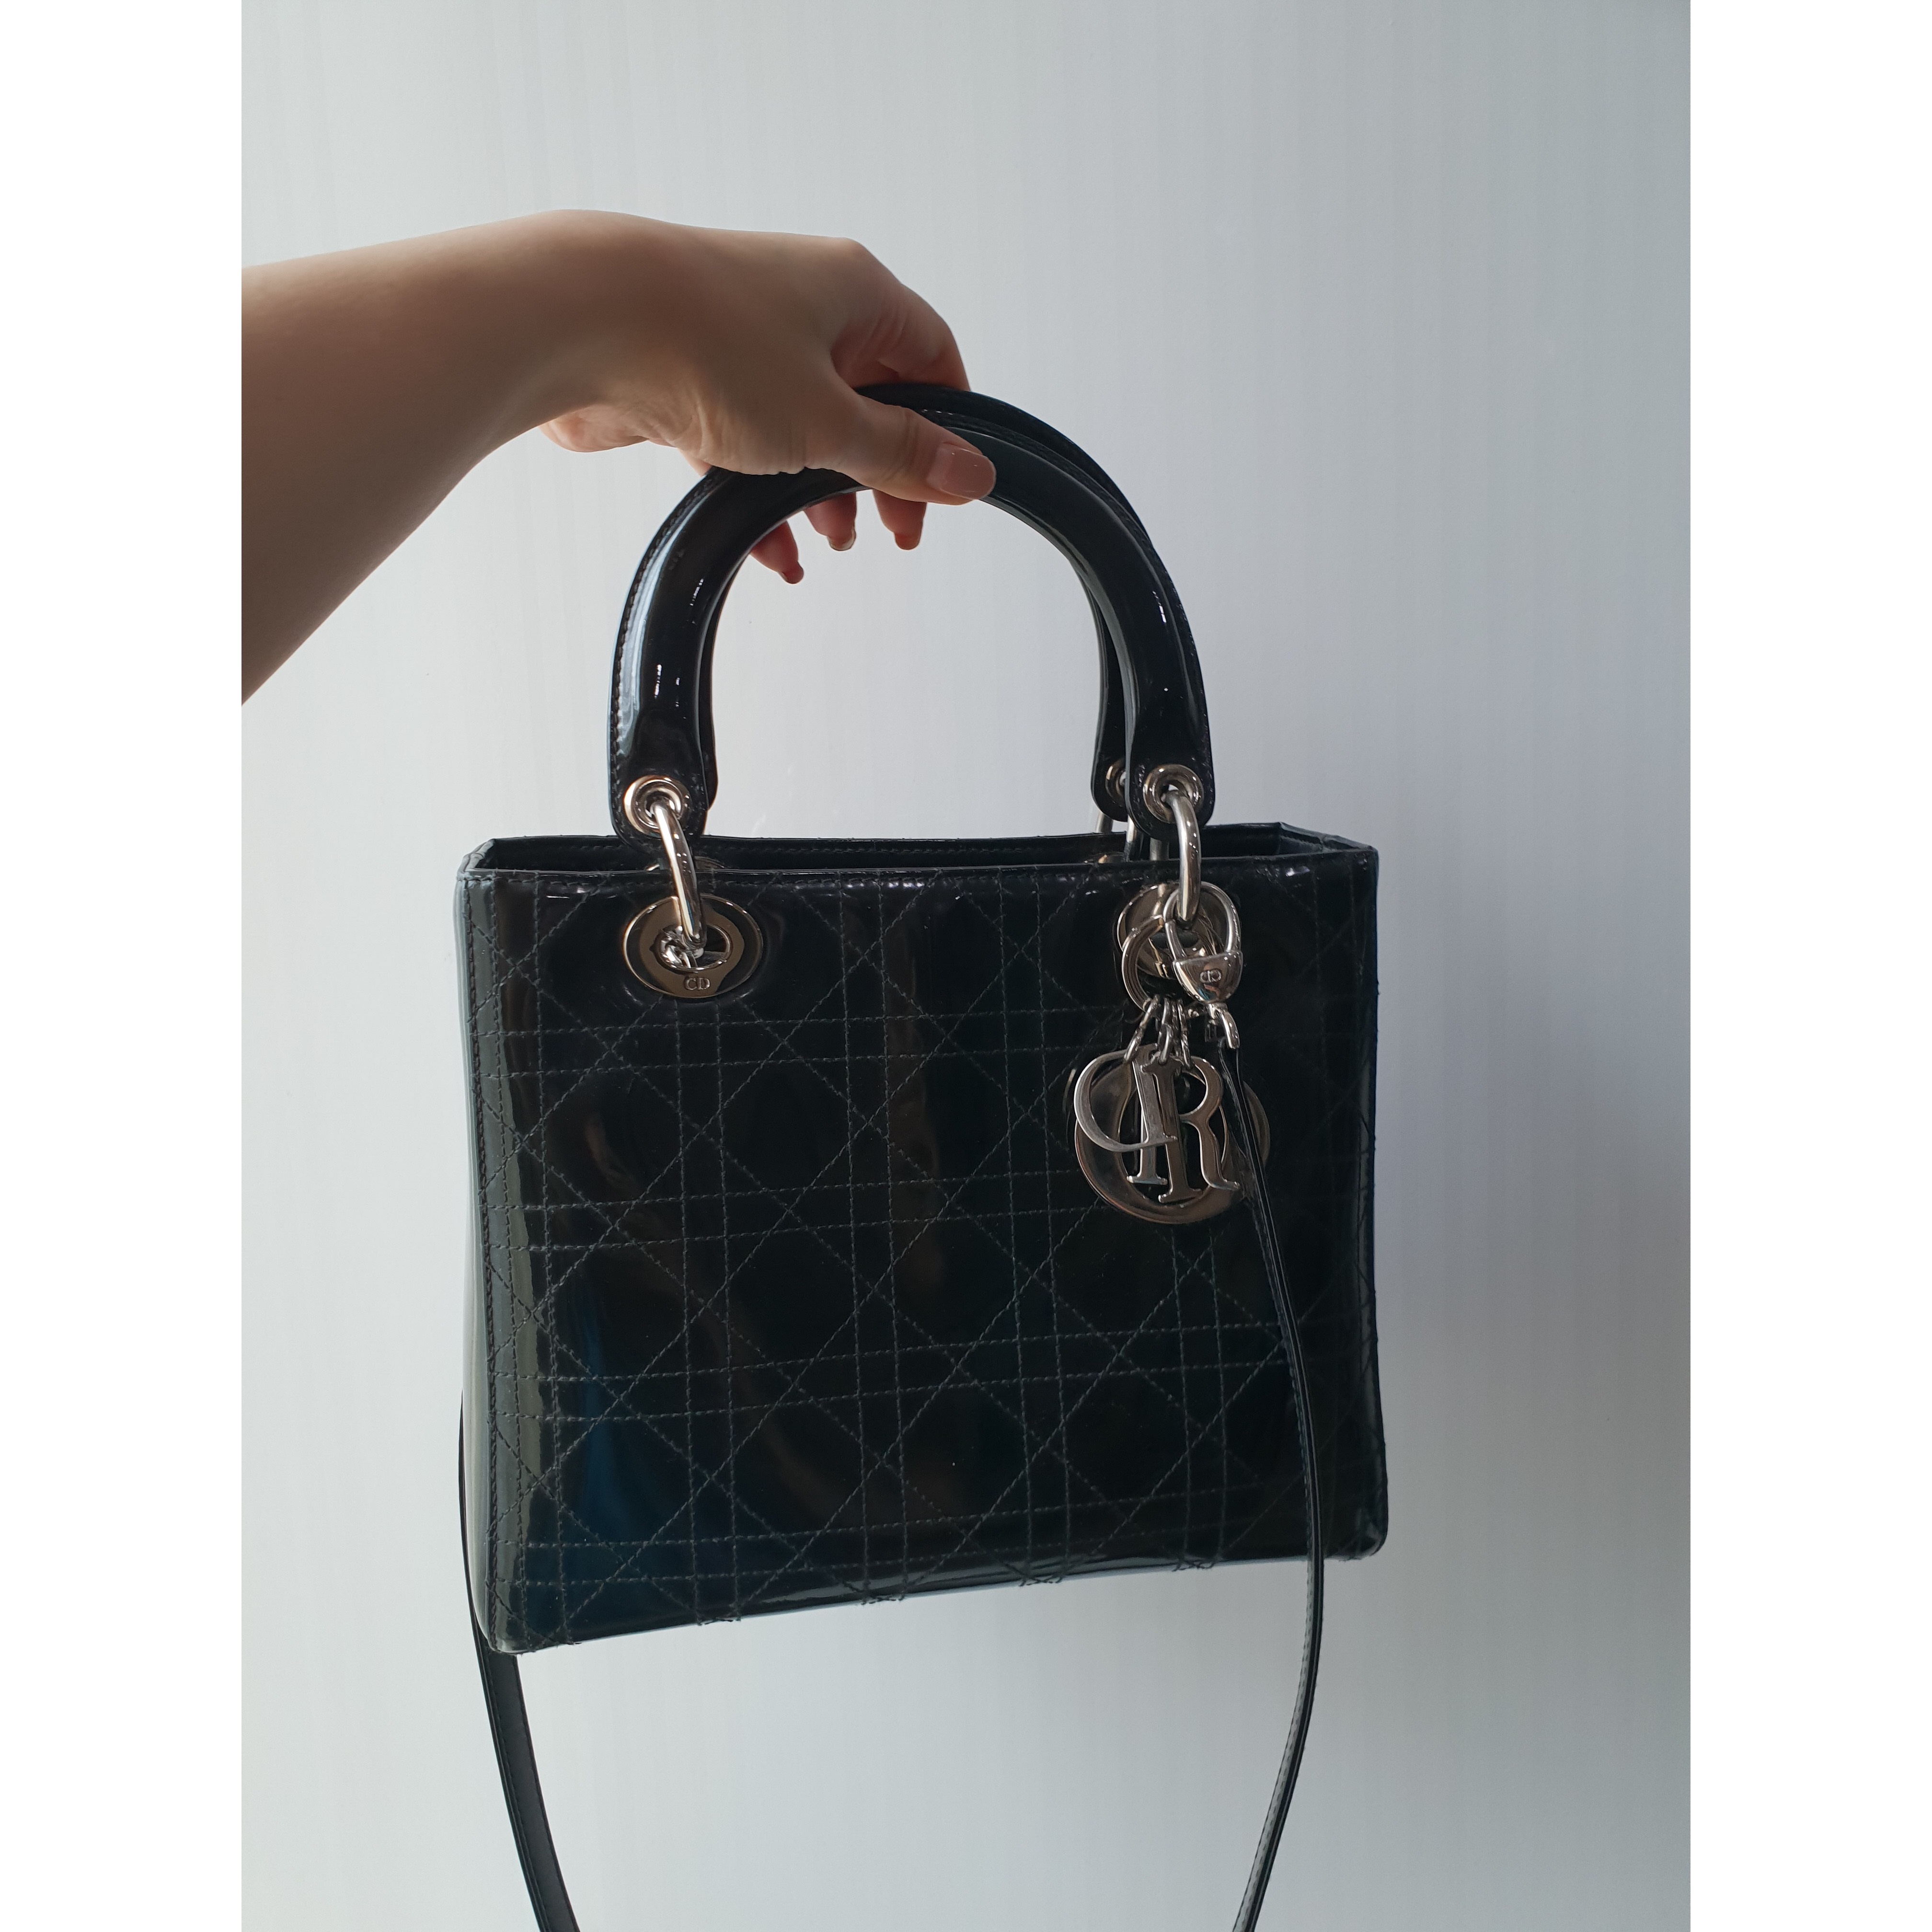 Lady Dior Medium In Black Patent Condition 8 5 10 Color Material Leather Good No Scuffed Corners